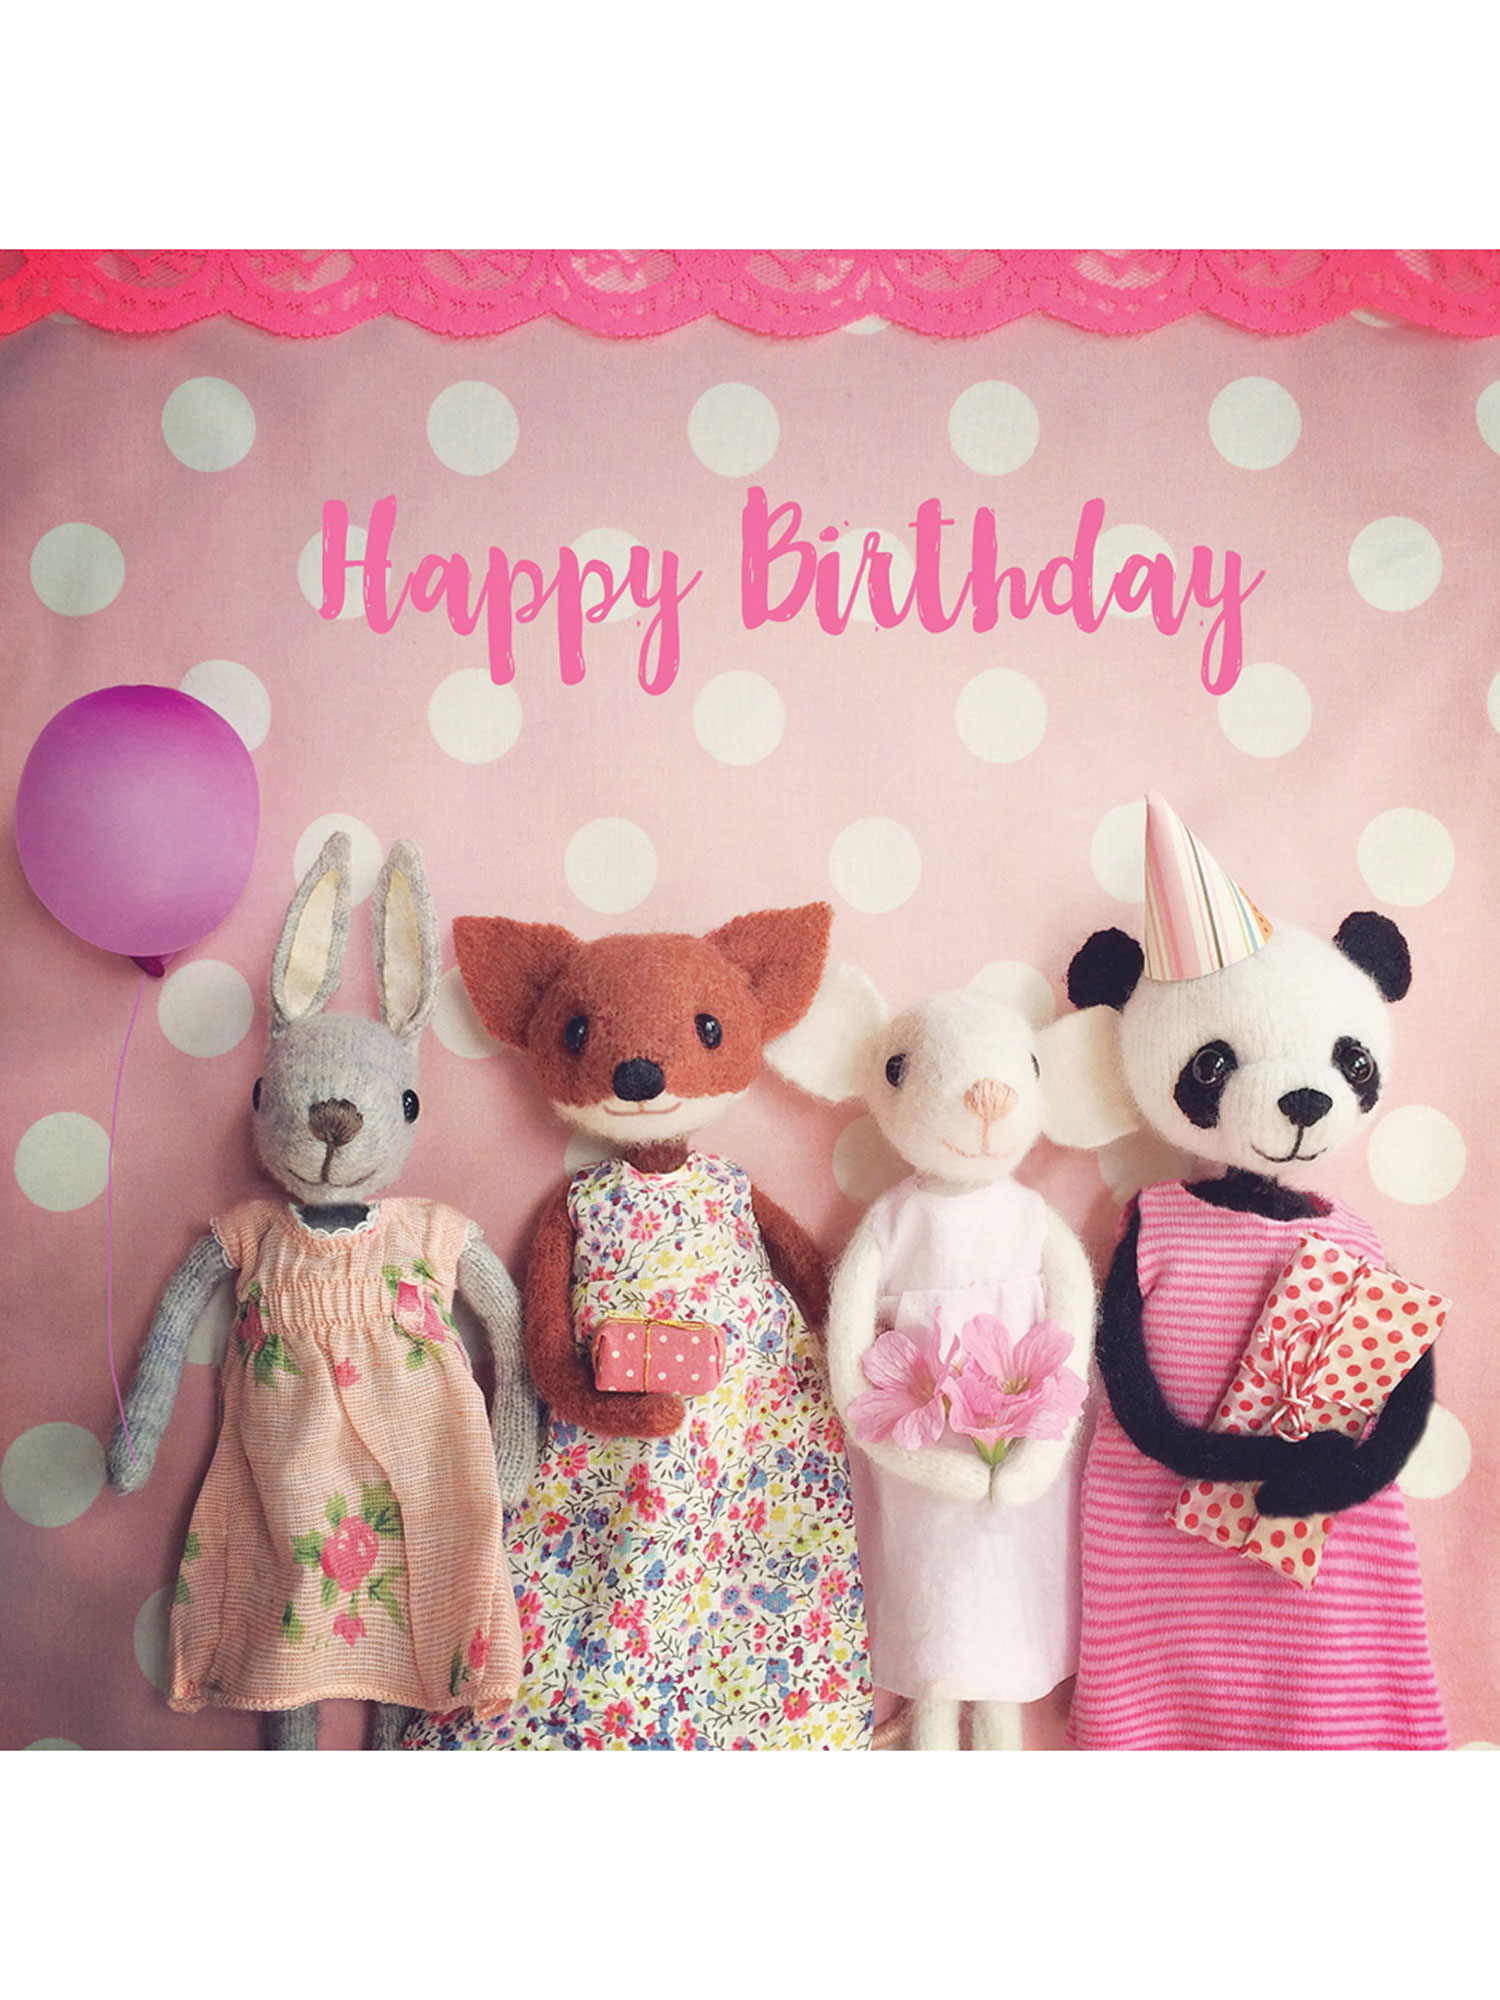 Pippi & Me Pink Happy Birthday Friends Card